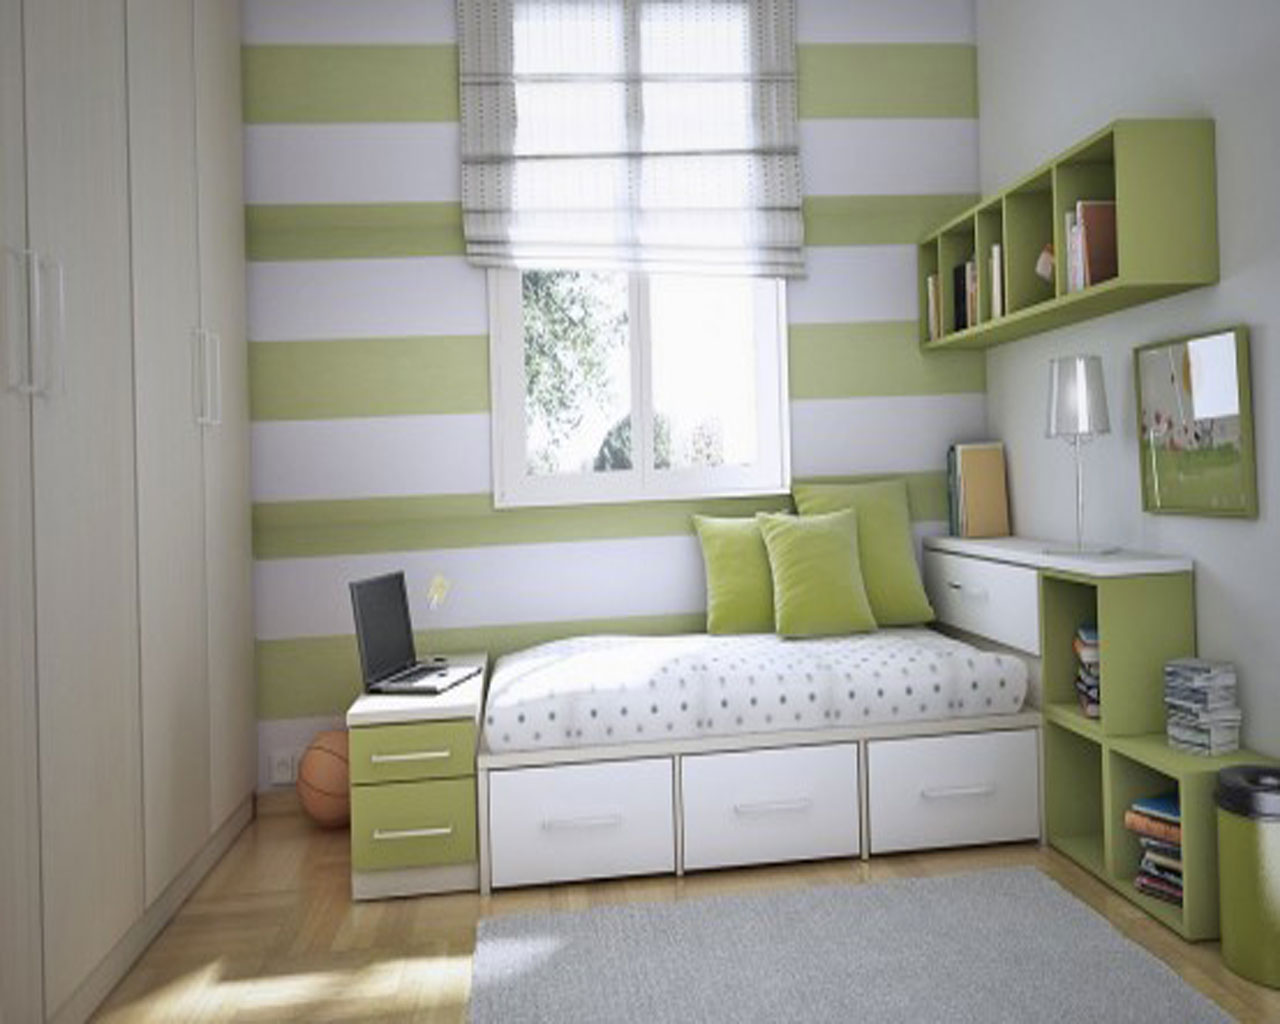 Best kids room design ideas times news uk Store room design ideas